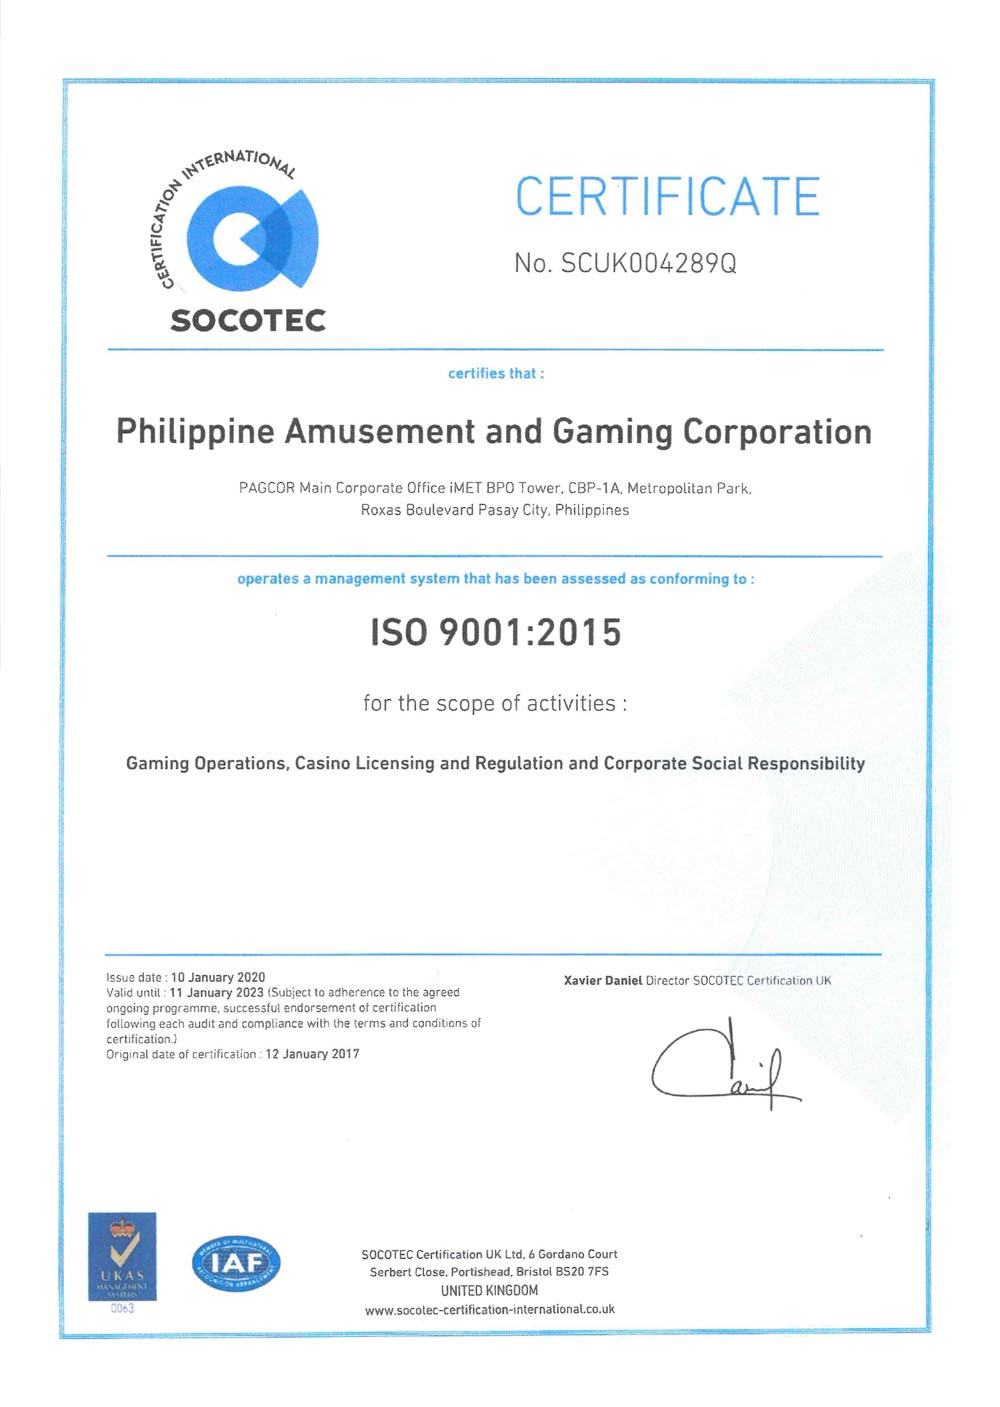 PAGCOR recertified to ISO 9001:2015